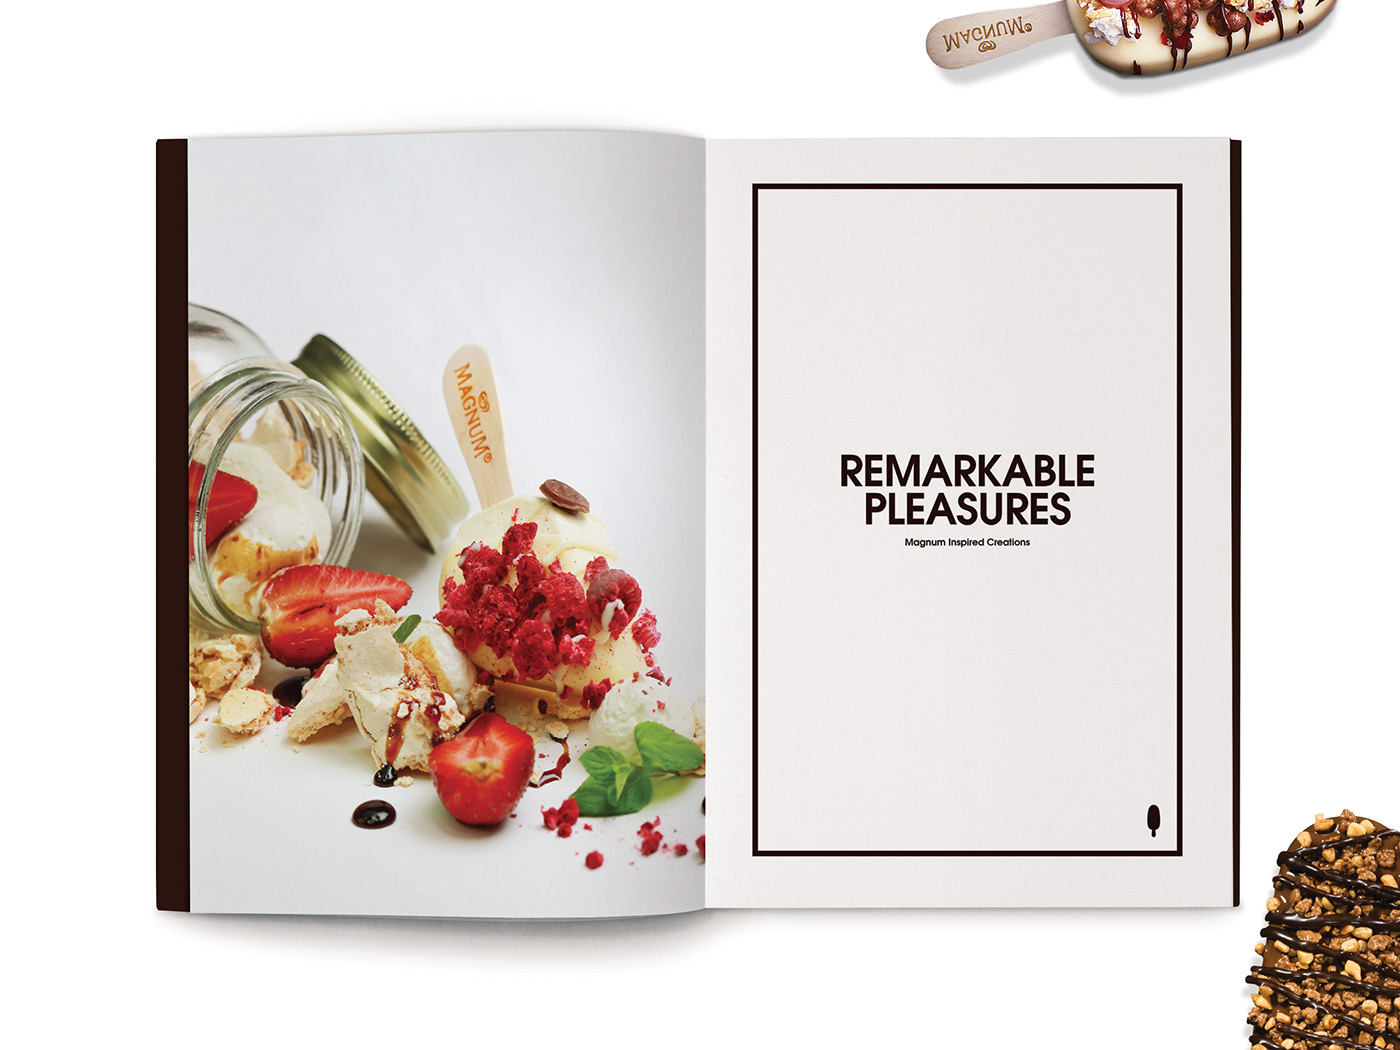 Magnum Pleasure Store menu design inner page layout design with beautiful food styling and photography.